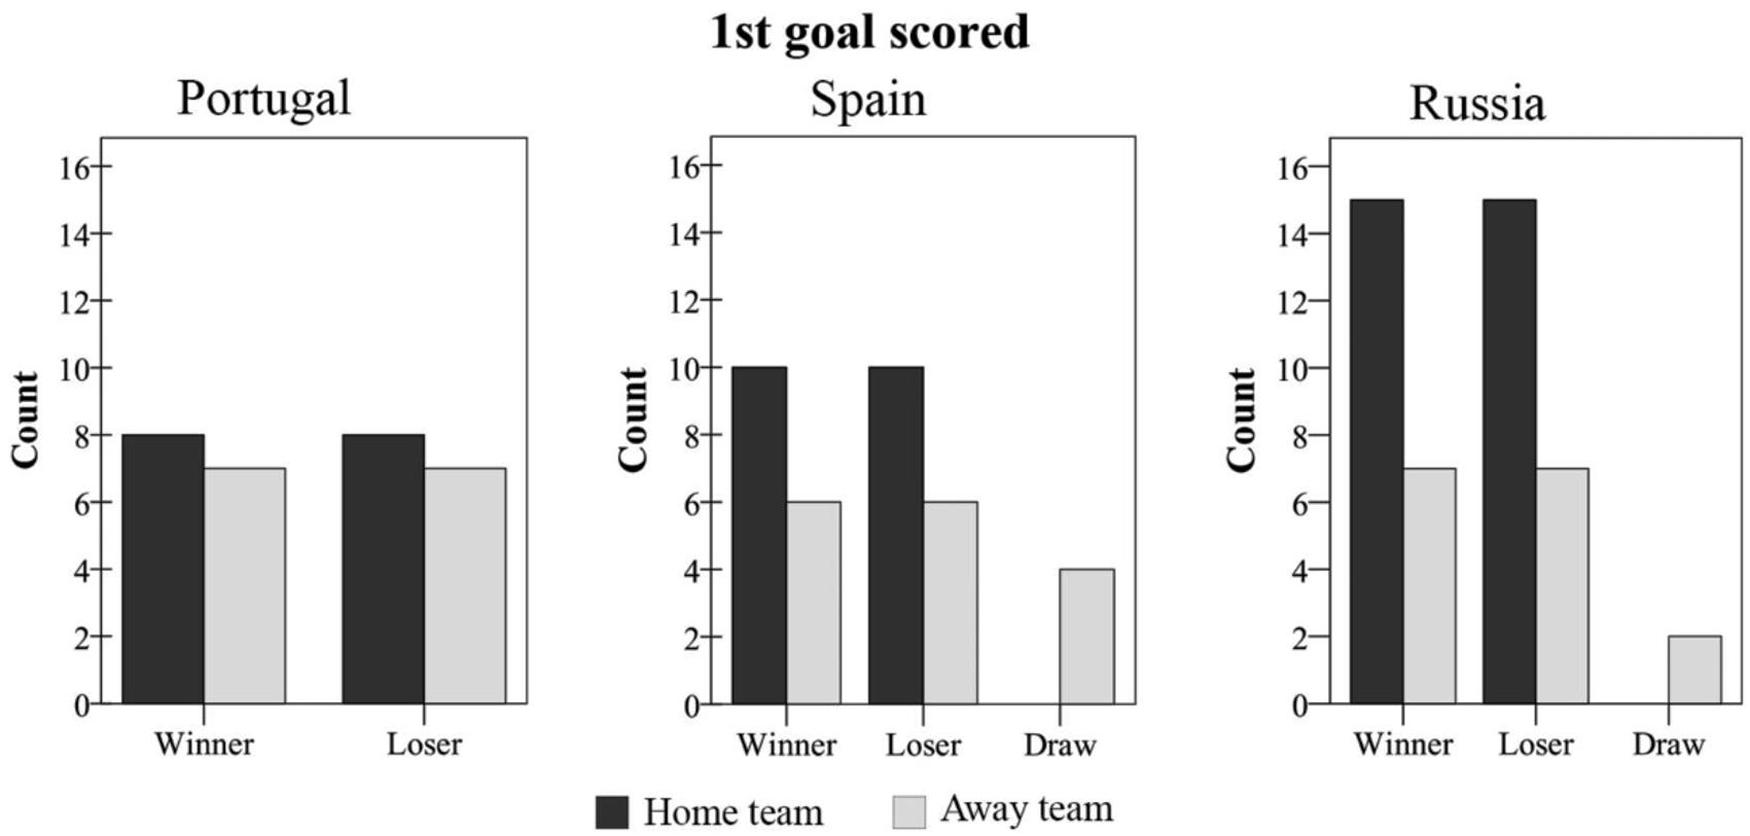 Frontiers Attacking Profiles Of The Best Ranked Teams From Elite Futsal Leagues Psychology